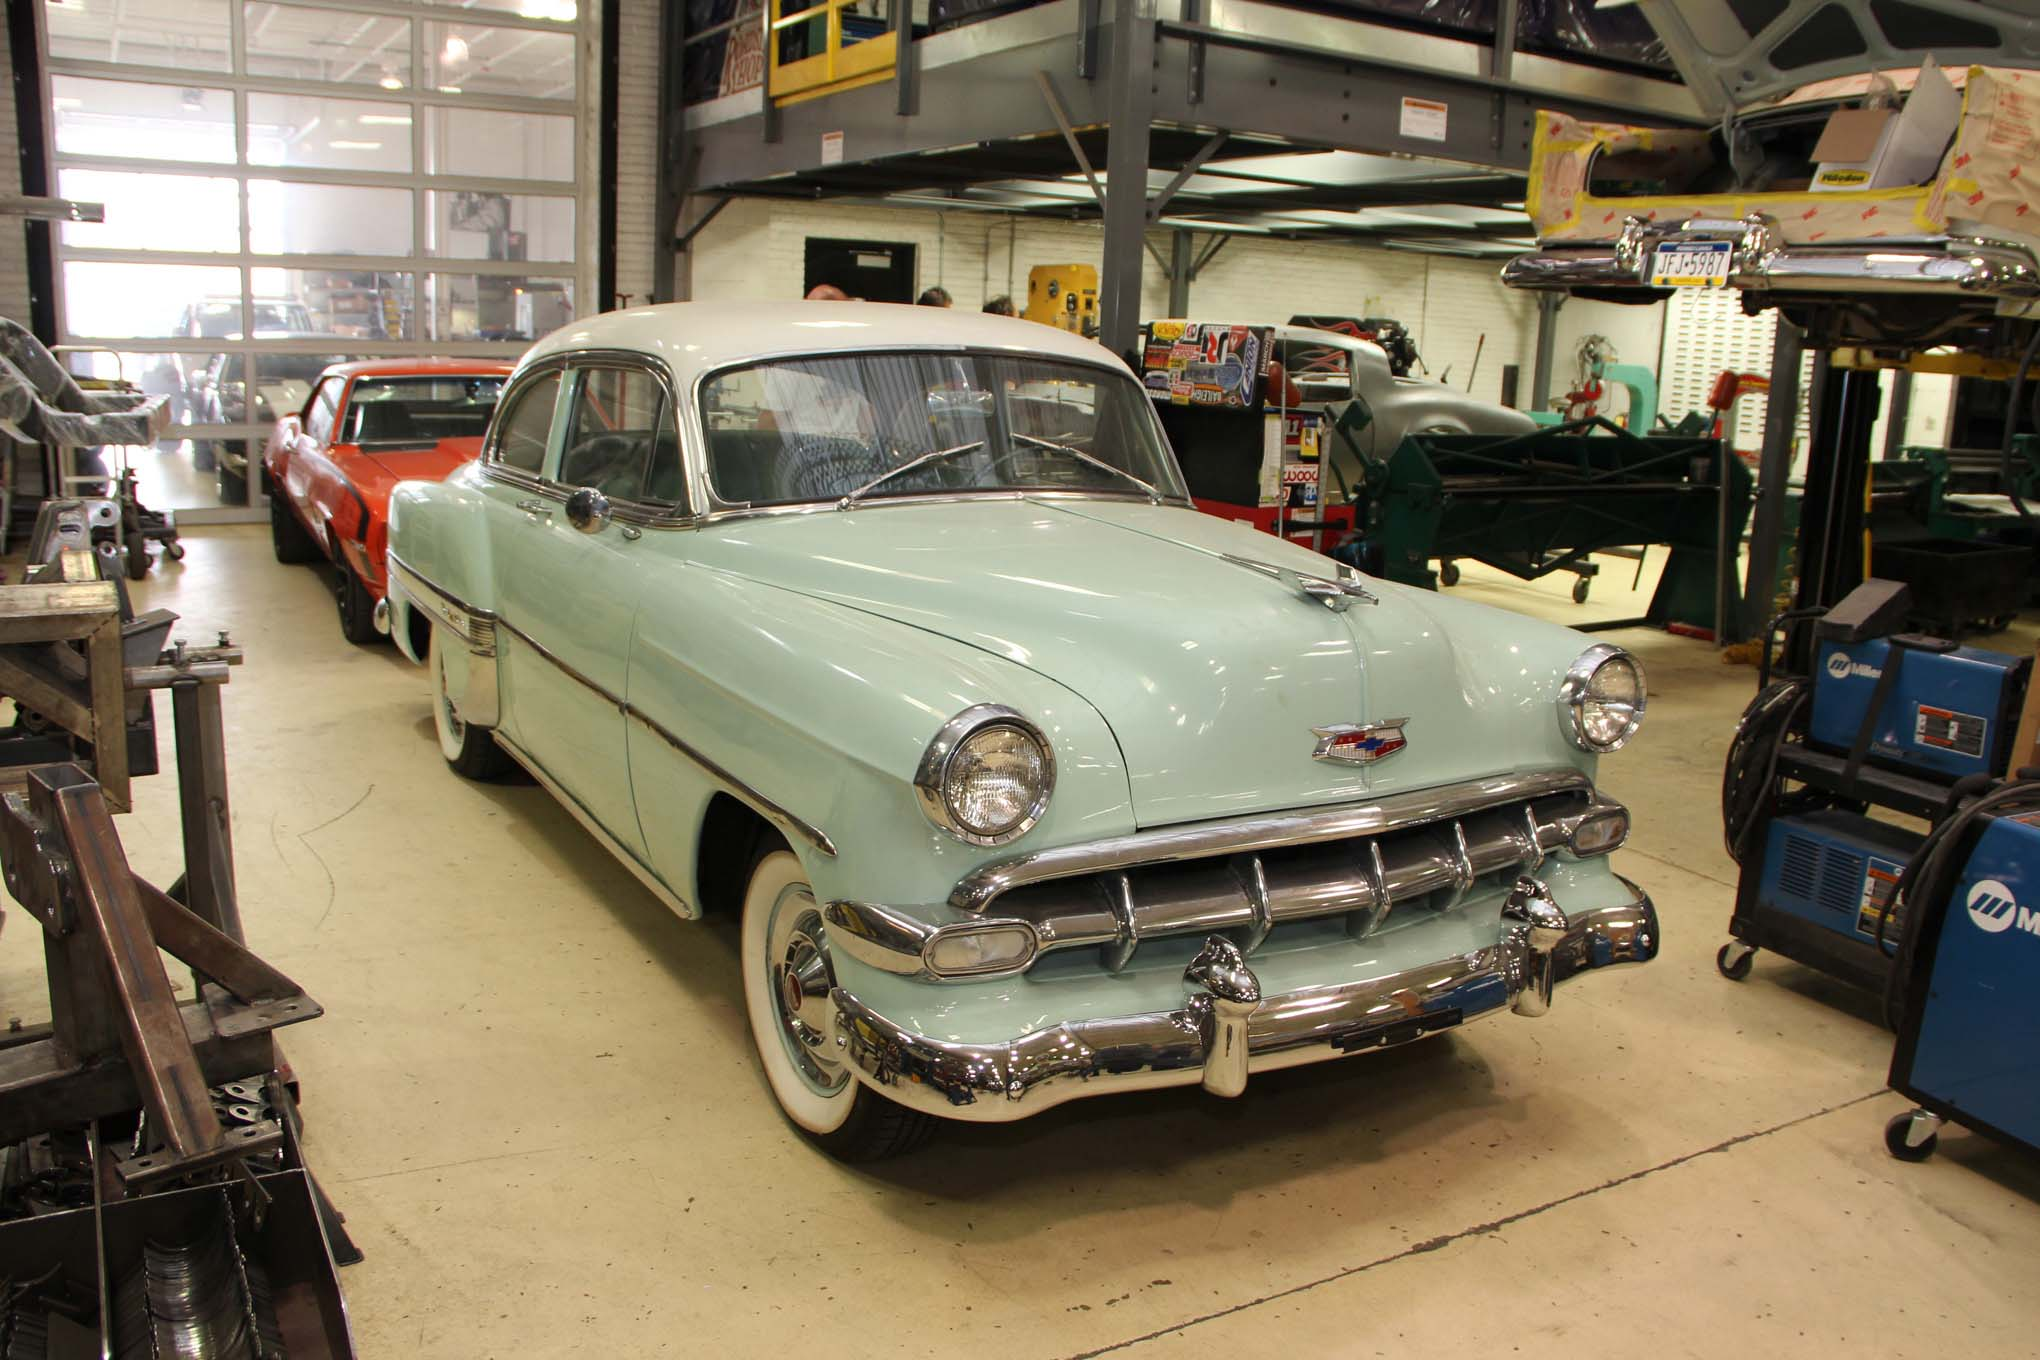 Gerber and his guys can put a chassis under anything. This 1954 Chevy is almost too nice to molest, but after some time in this shop, it should be able to cruise at 80 with the A/C on.